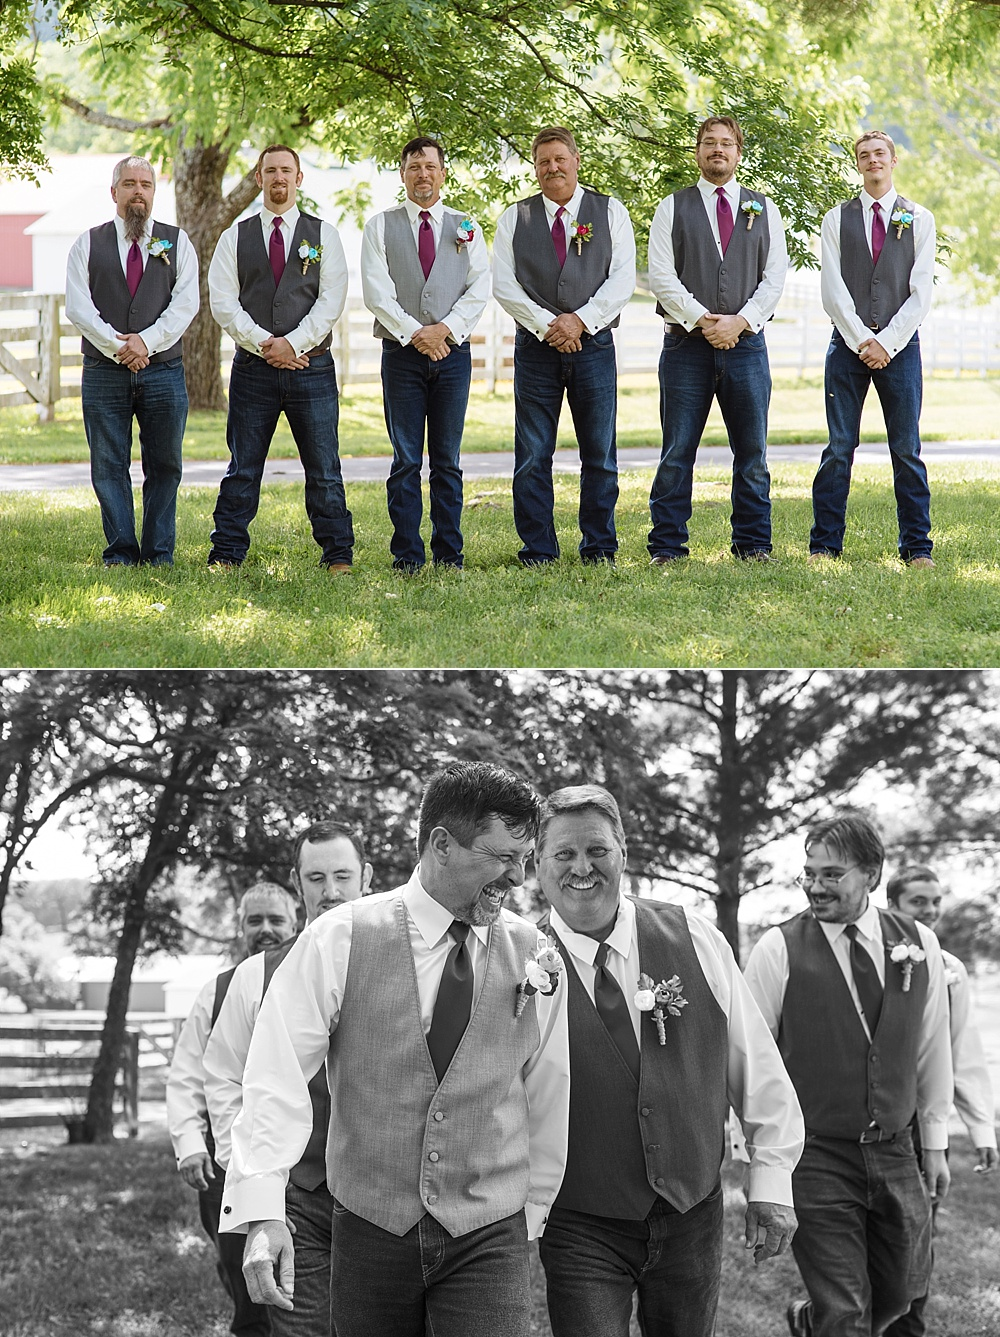 Groomsmen formal photos and candid photo